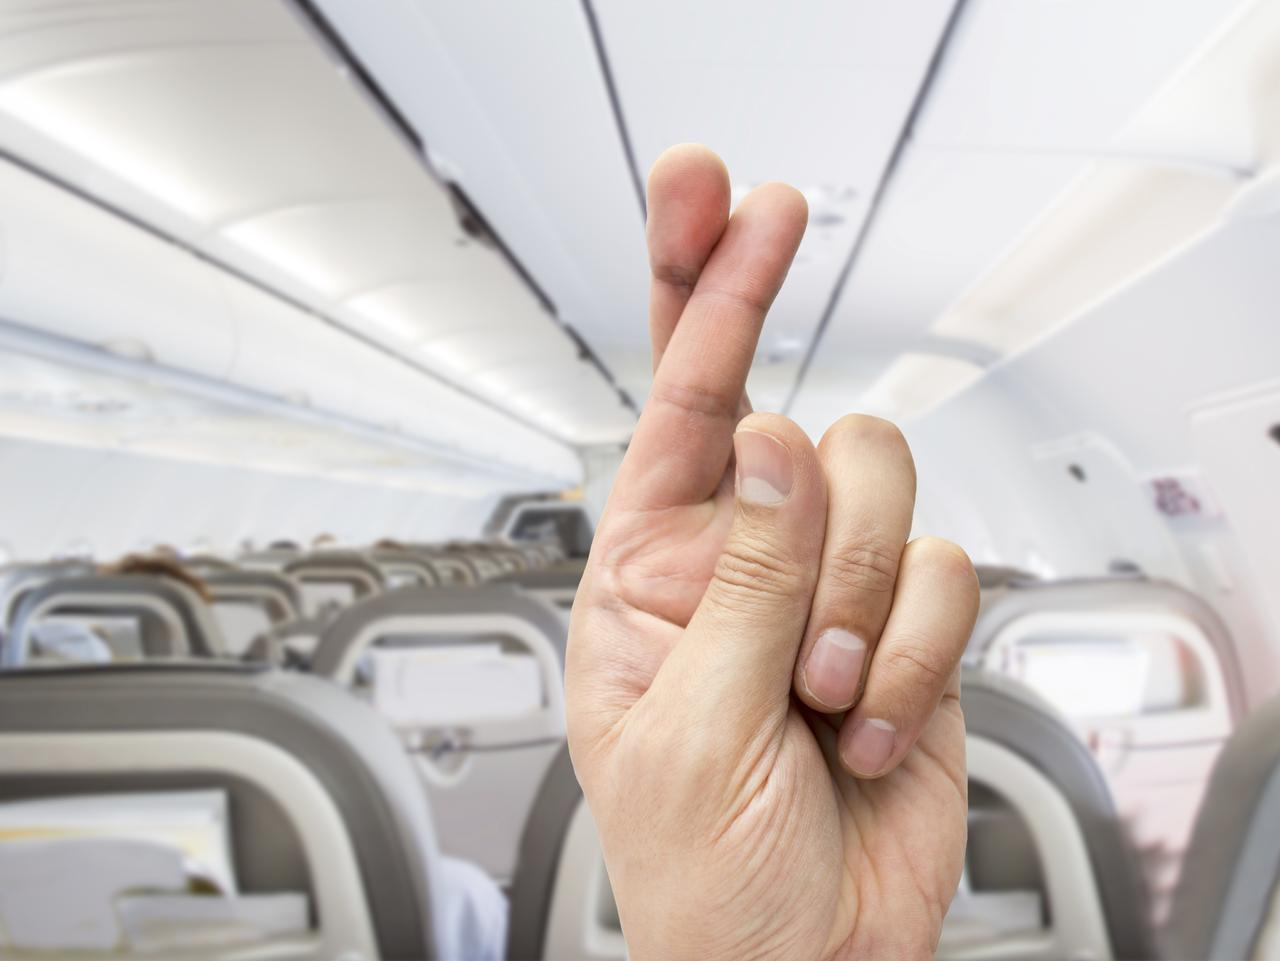 hand crossing the fingers like symbol of superstition to have good luck at the indoor of the plane